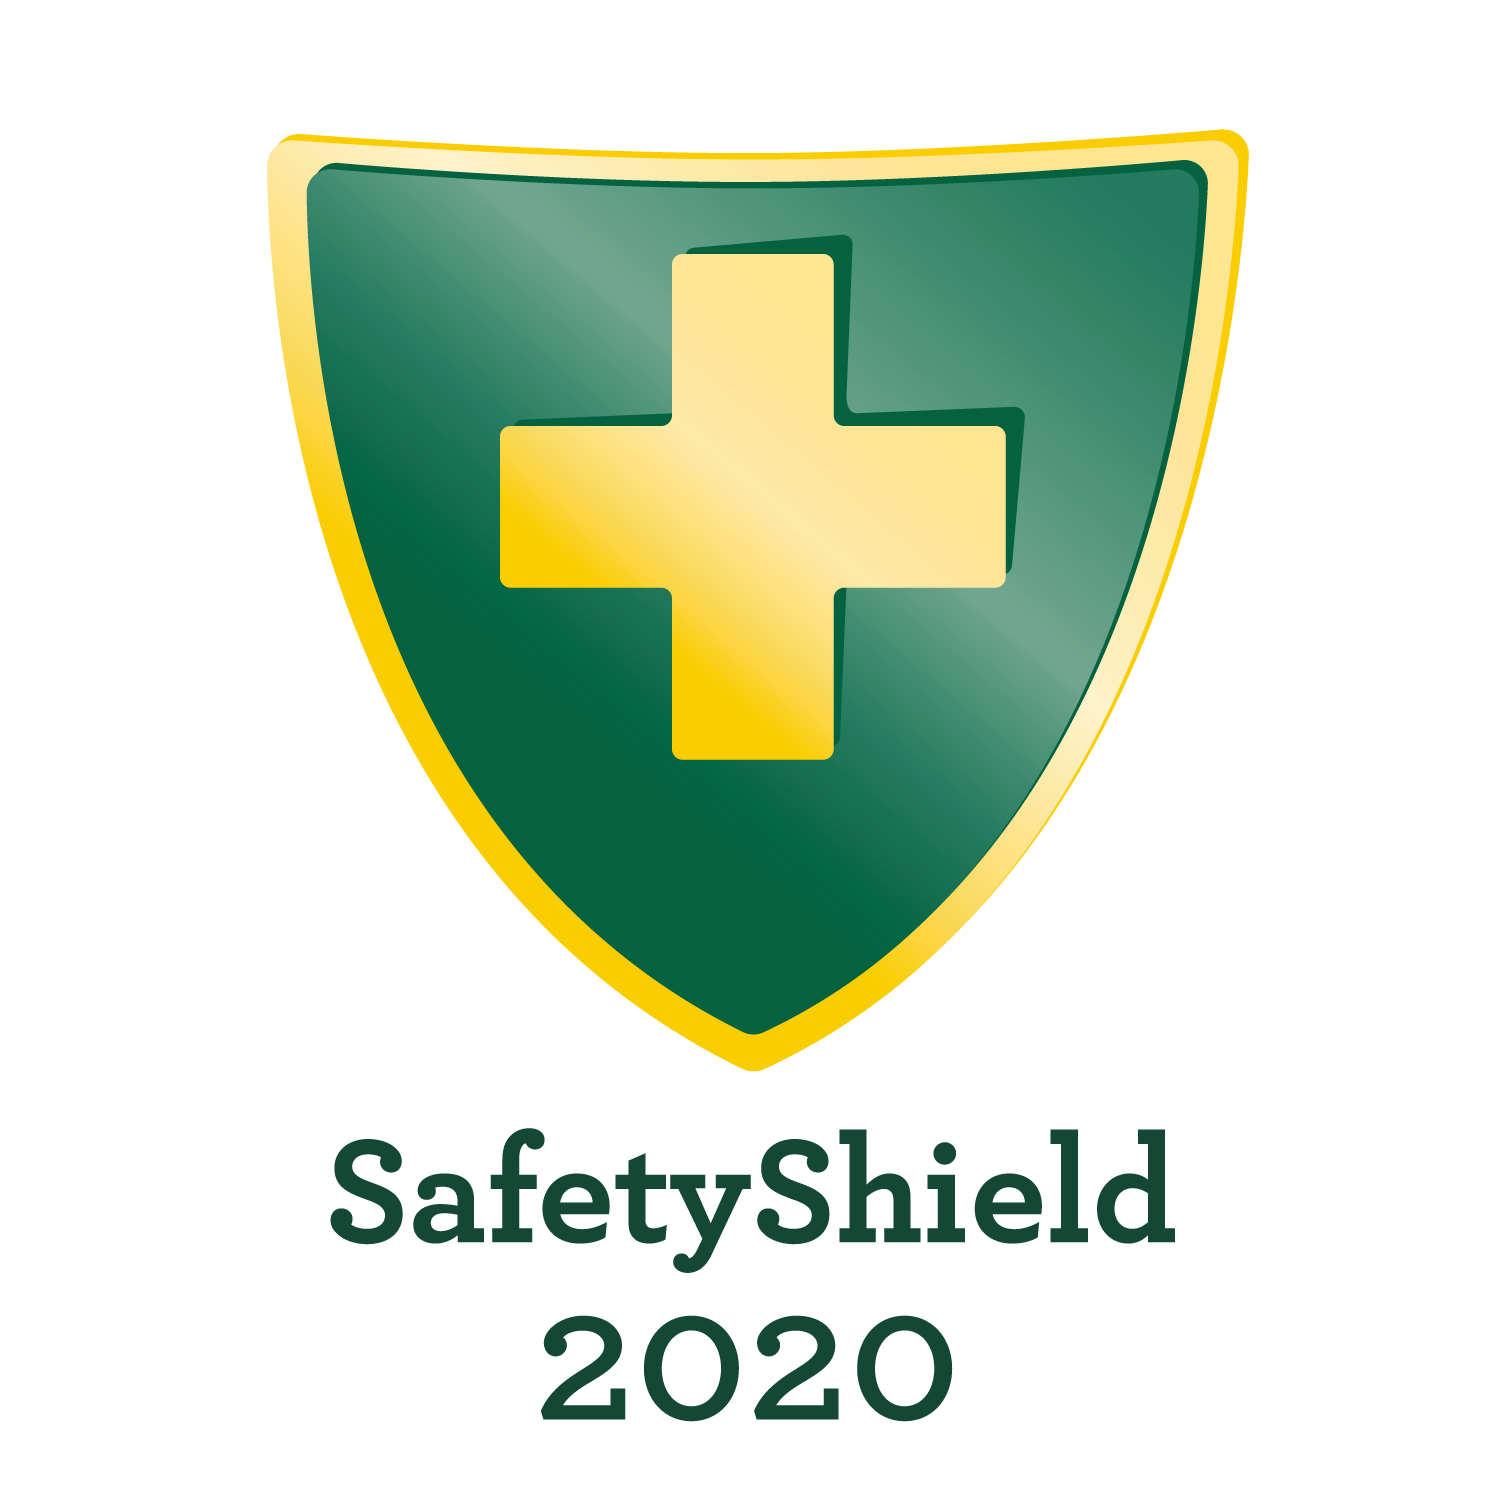 2020 Safety Shield